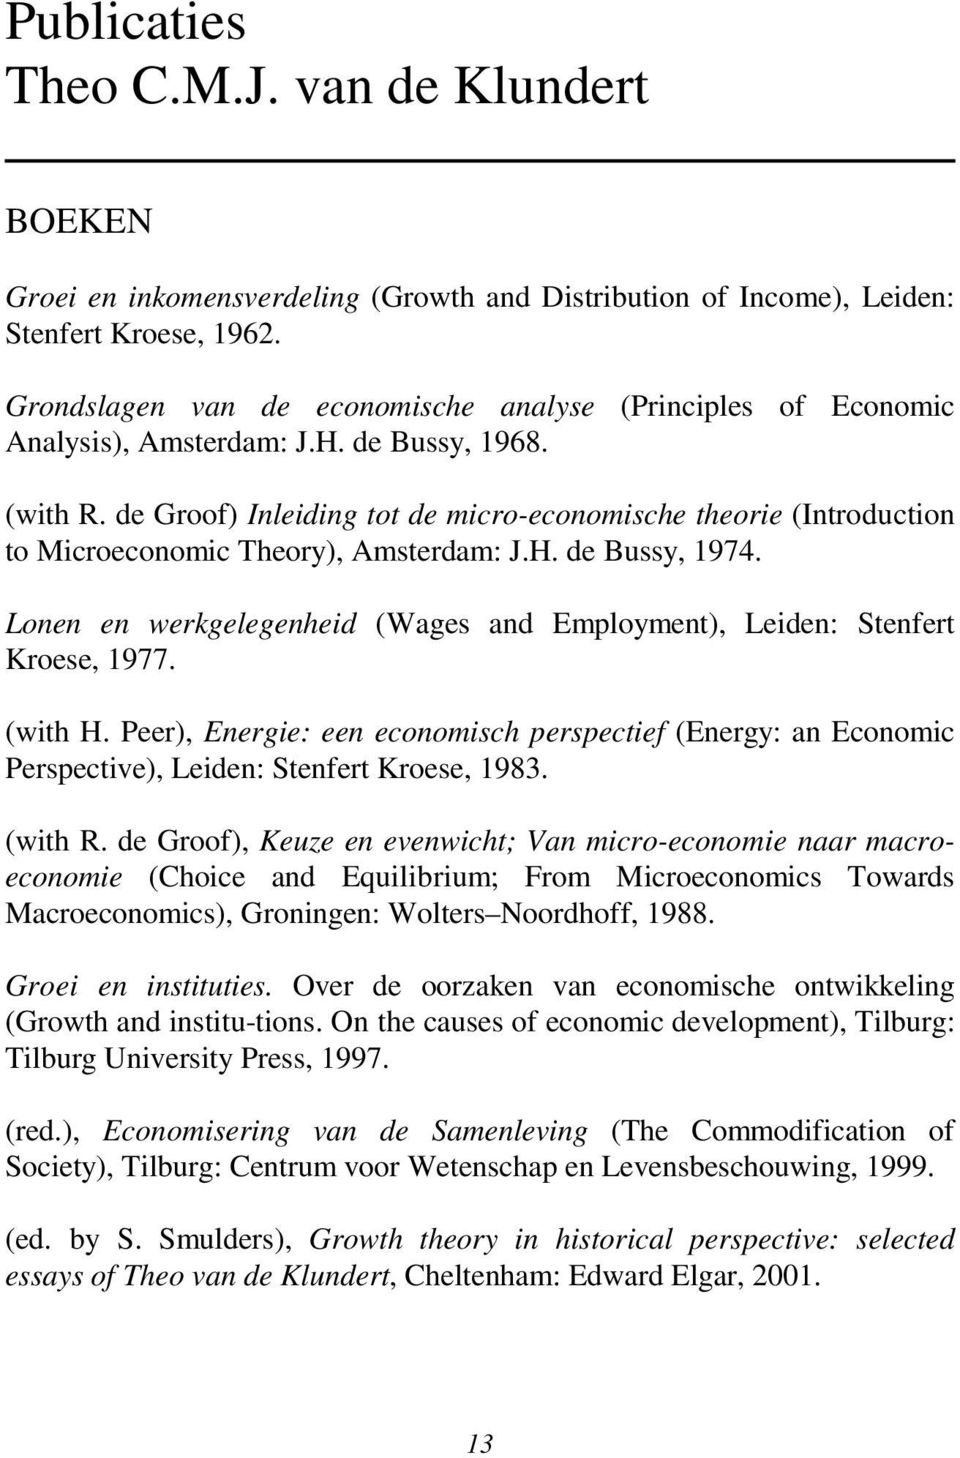 de Groof) Inleiding tot de micro-economische theorie (Introduction to Microeconomic Theory), Amsterdam: J.H. de Bussy, 1974.